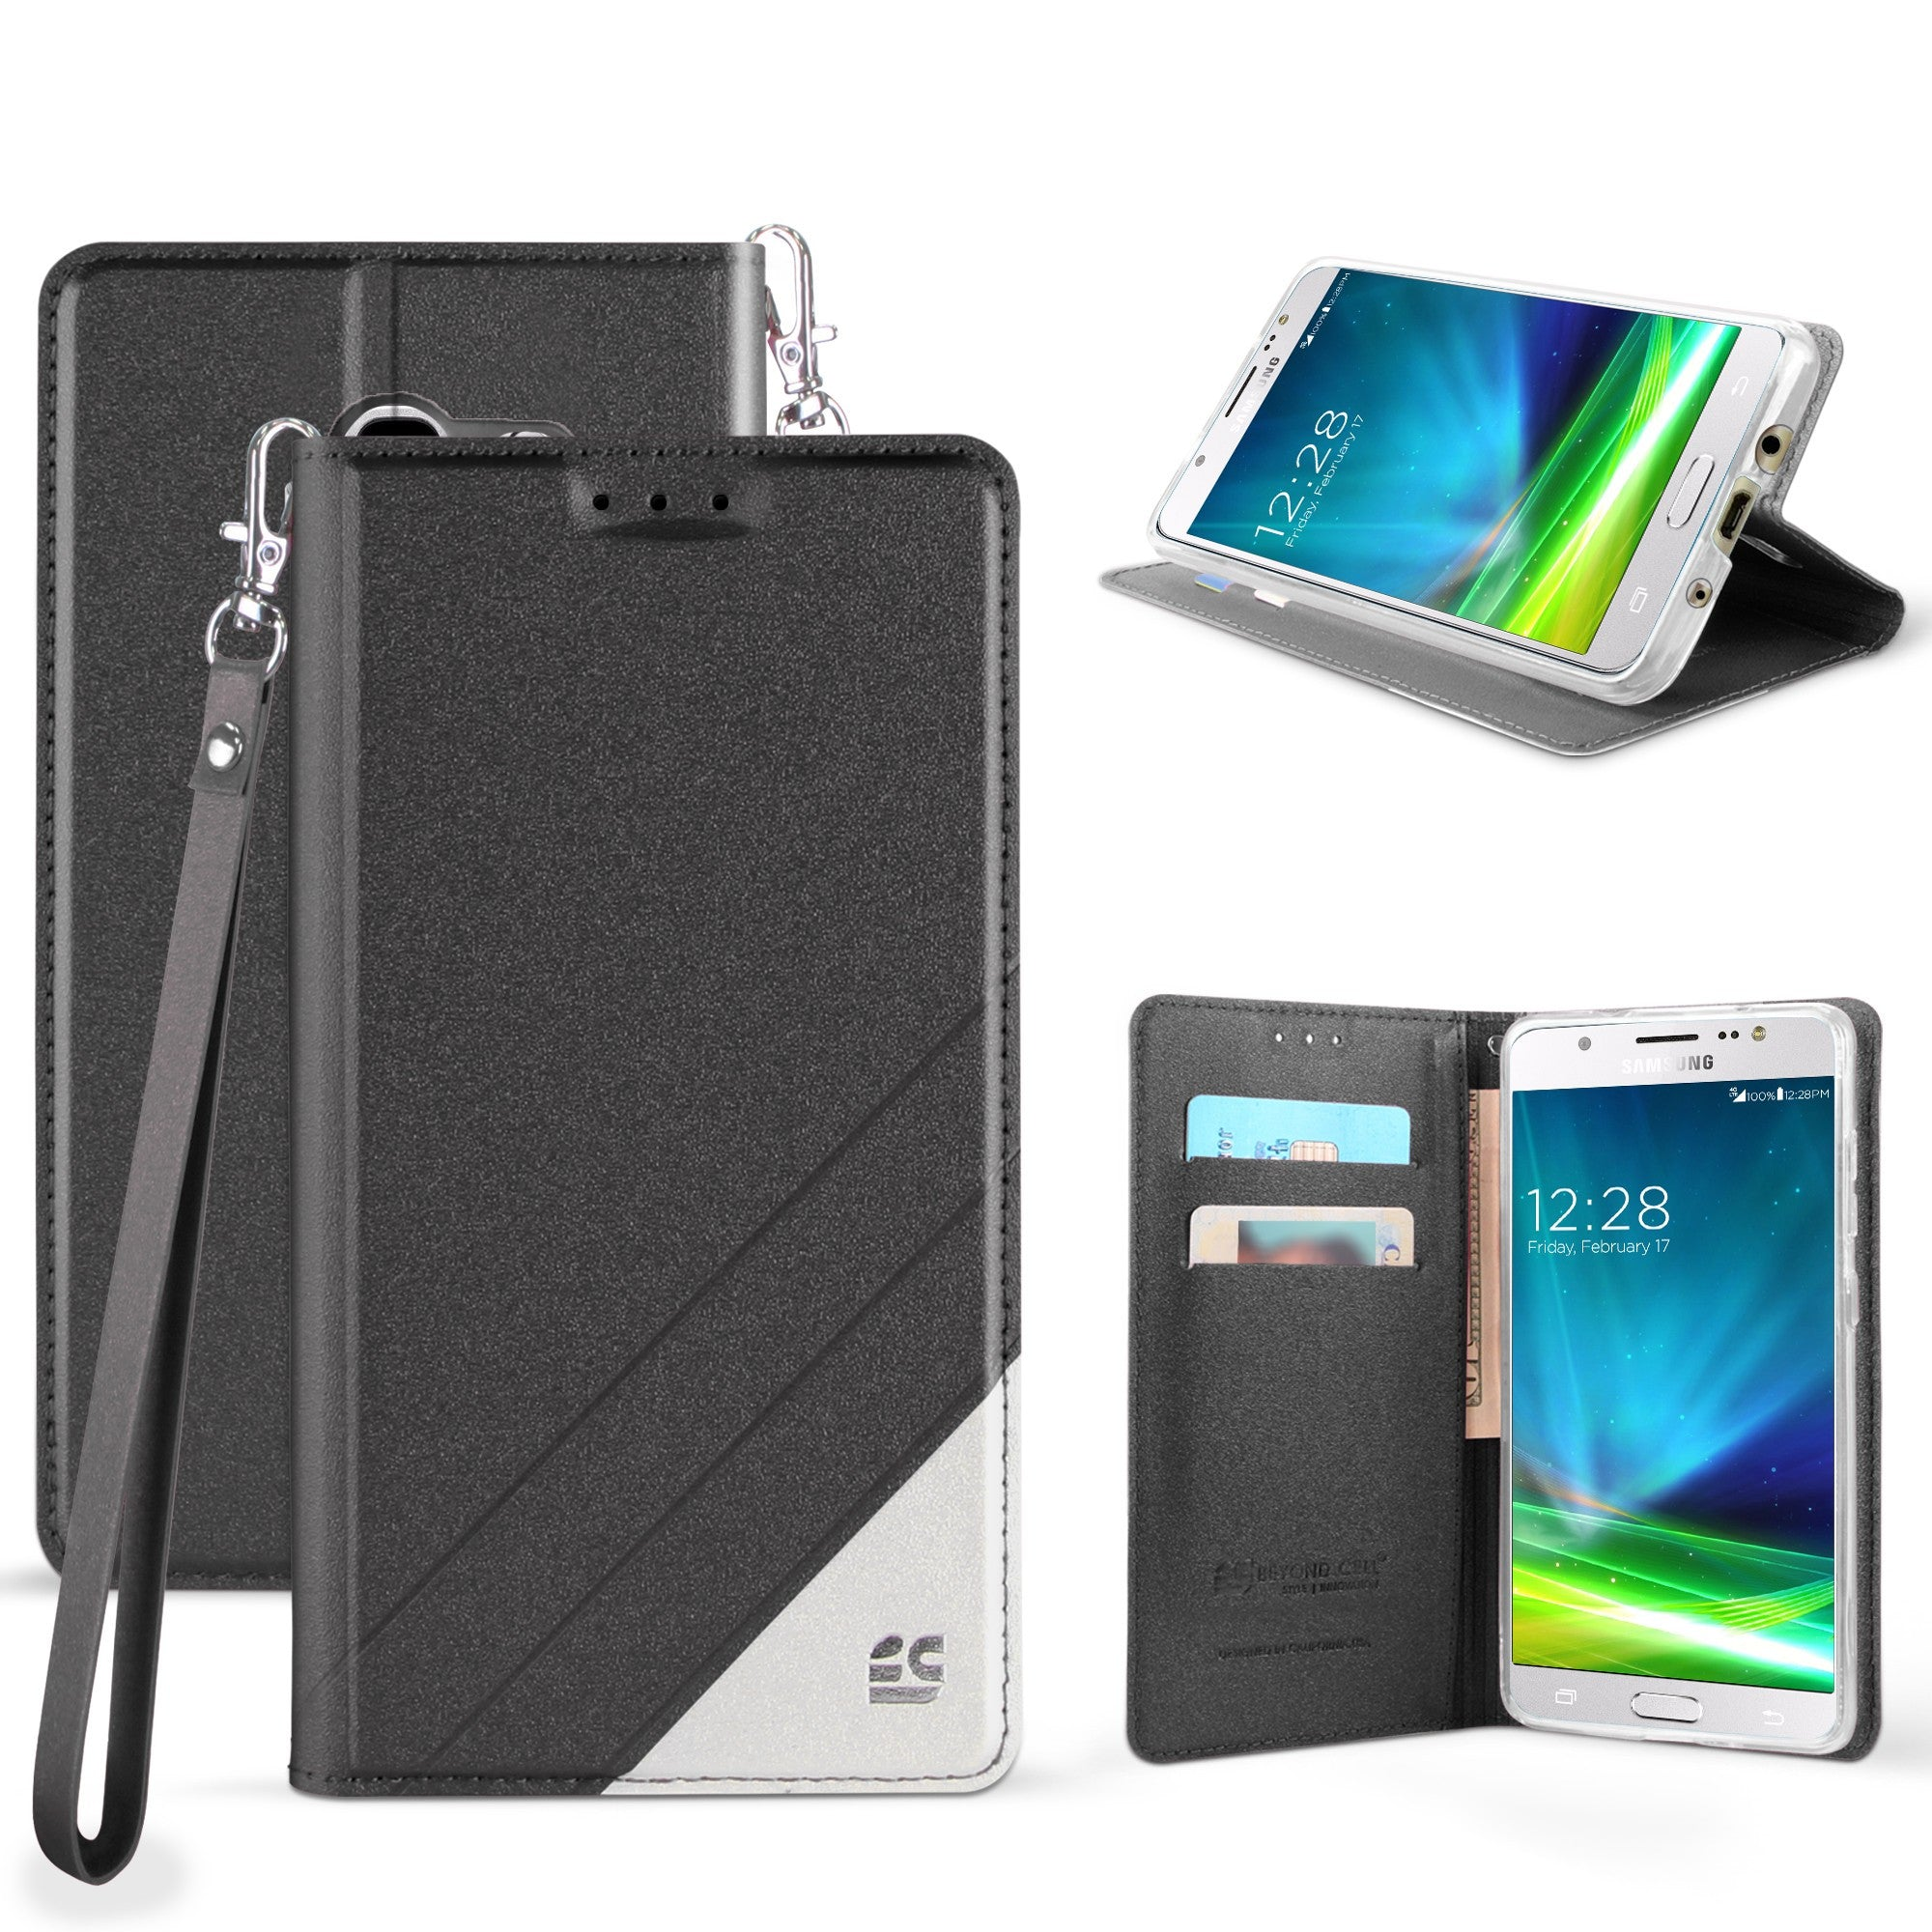 new york 61233 0fc54 Infolio C For Samsung Galaxy J5 2017/ J5 Prime Black/White With Clear Gel  PU Leather/TPU Case/2 Tone/Card Slot/Magnetic Close/Strap